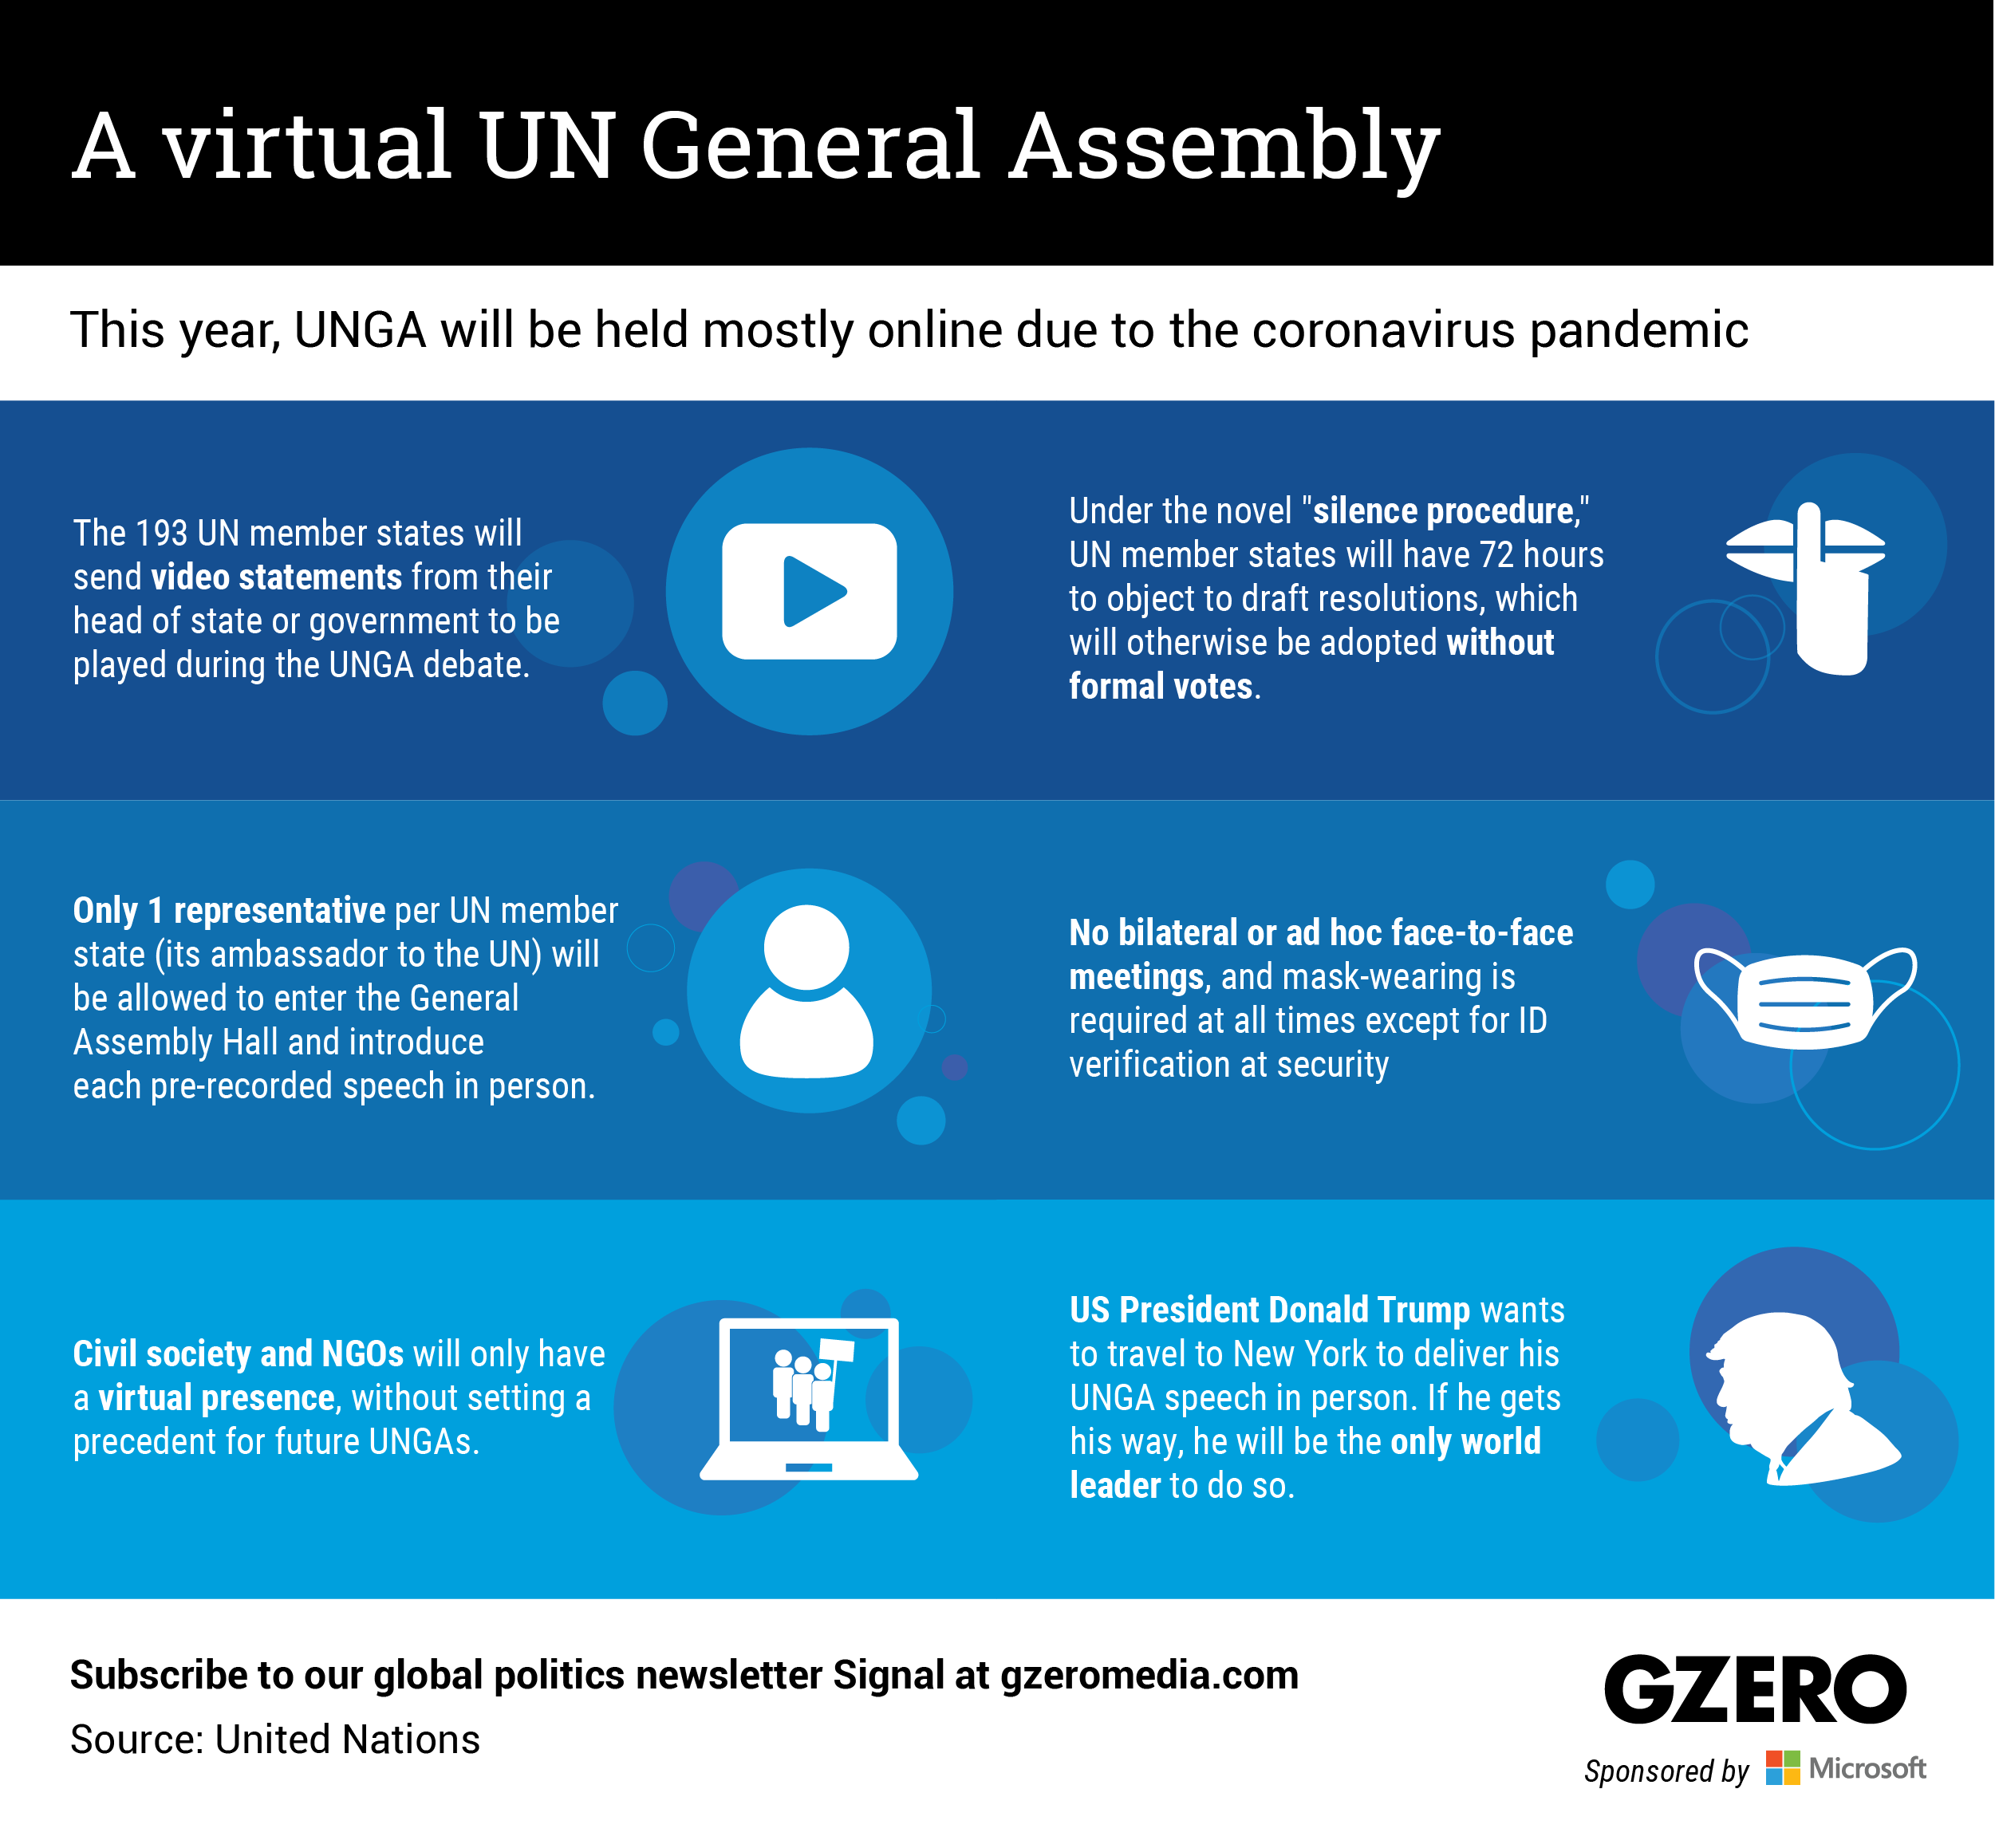 The Graphic Truth: A virtual UN General Assembly